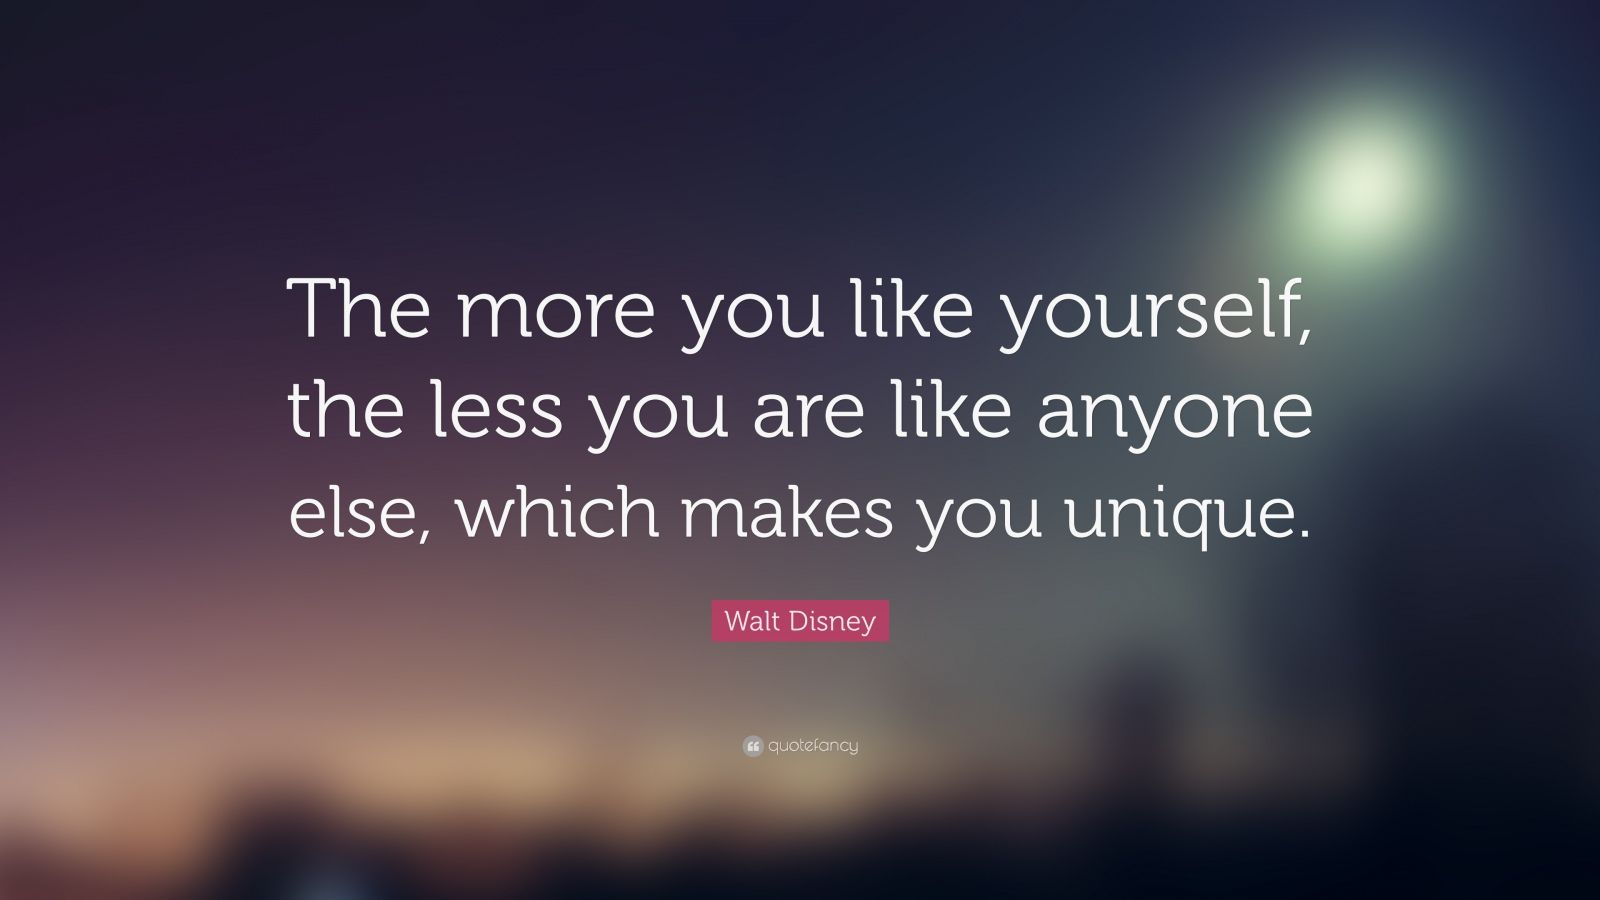 Walt Disney Quotes You Like Yourself More